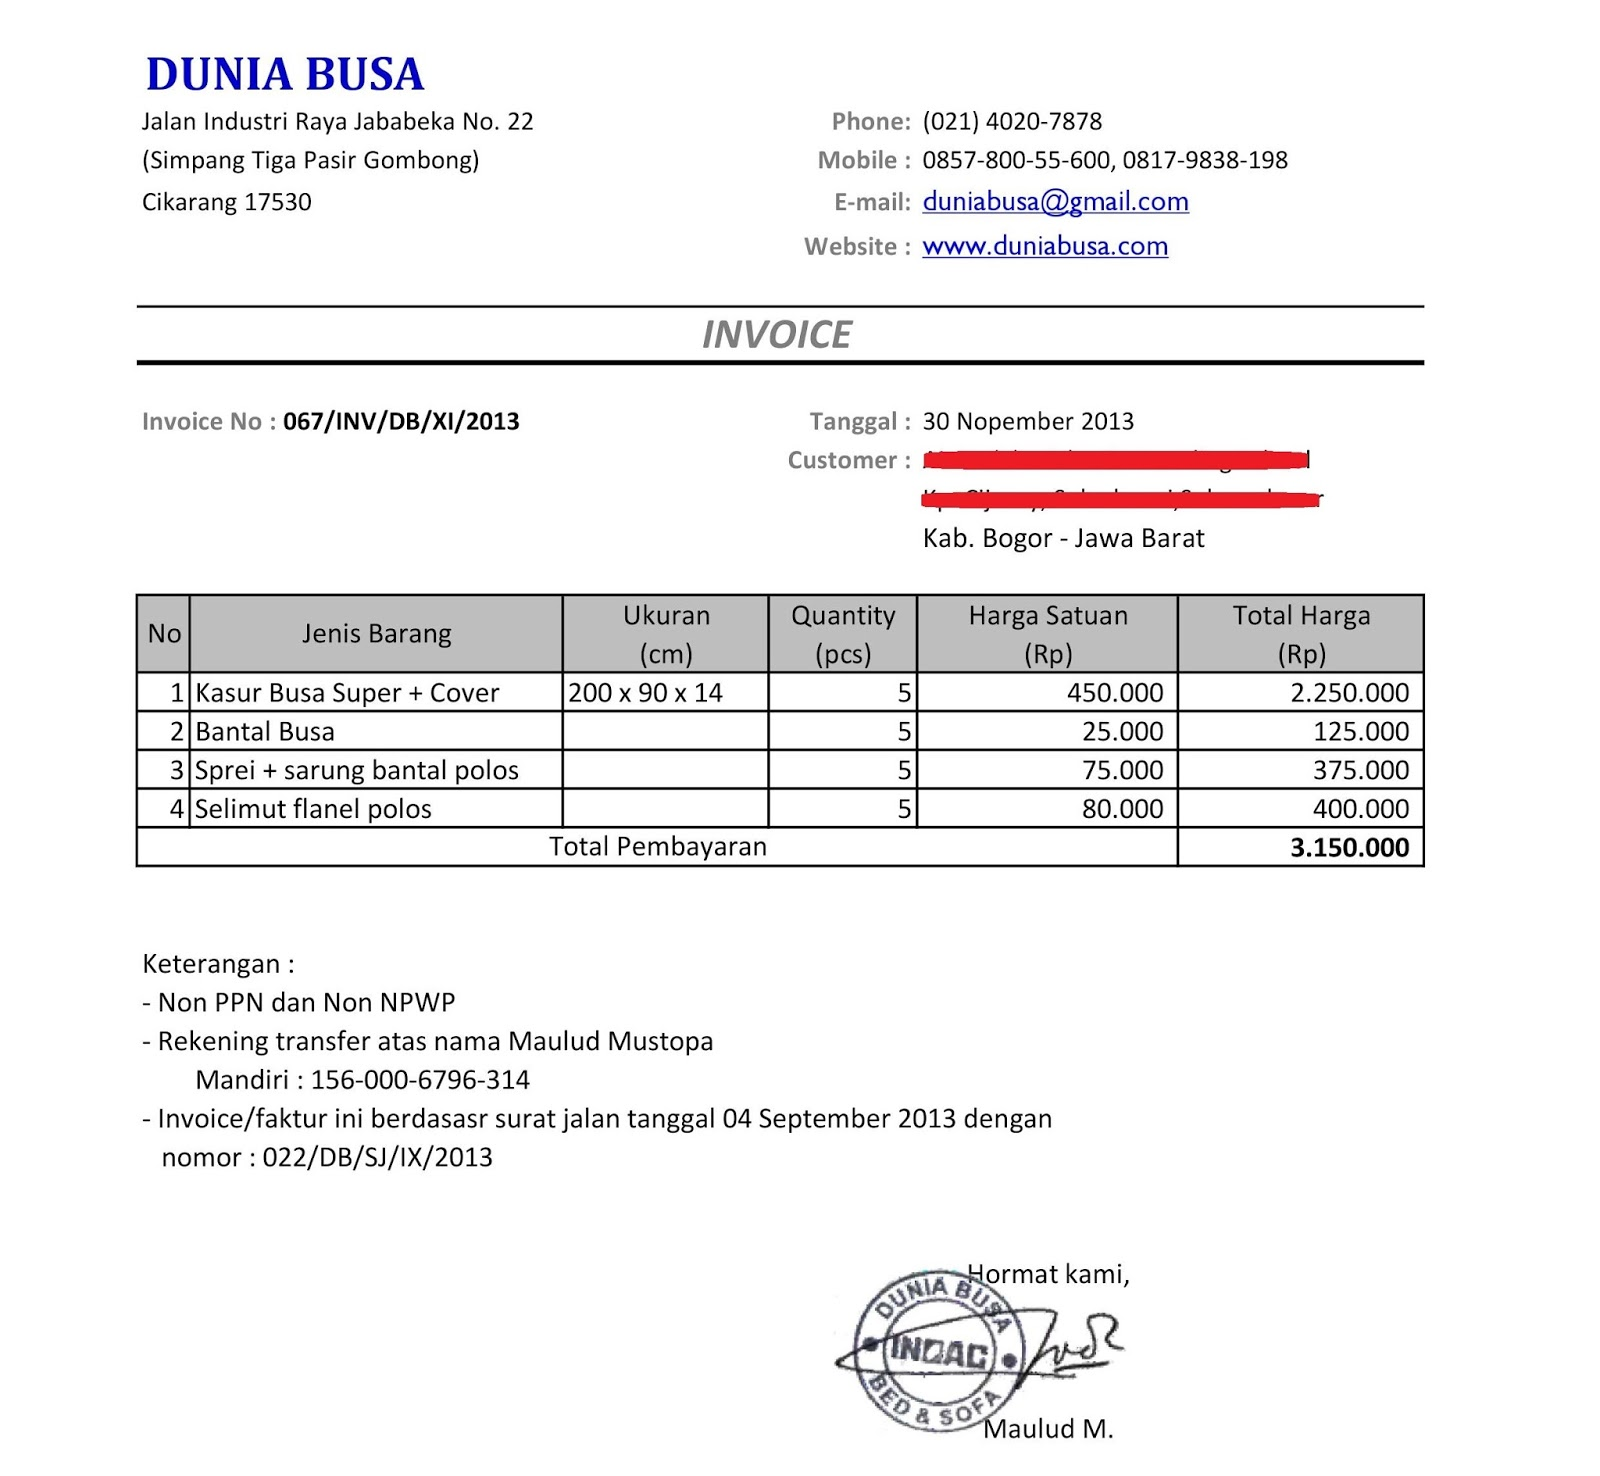 Usdgus  Gorgeous Free Invoice Online  Create Invoice Online  Invoice Template  With Magnificent Contoh Format Invoice Atau Surat Tagihan  Brankas Arsip  Free Invoice Online With Cute Invoice Not Paid Also How Do I Write An Invoice In Addition Dictionary Invoice And Sample Design Invoice As Well As Invoice Android Additionally Tenant Invoice From Sklepco With Usdgus  Magnificent Free Invoice Online  Create Invoice Online  Invoice Template  With Cute Contoh Format Invoice Atau Surat Tagihan  Brankas Arsip  Free Invoice Online And Gorgeous Invoice Not Paid Also How Do I Write An Invoice In Addition Dictionary Invoice From Sklepco